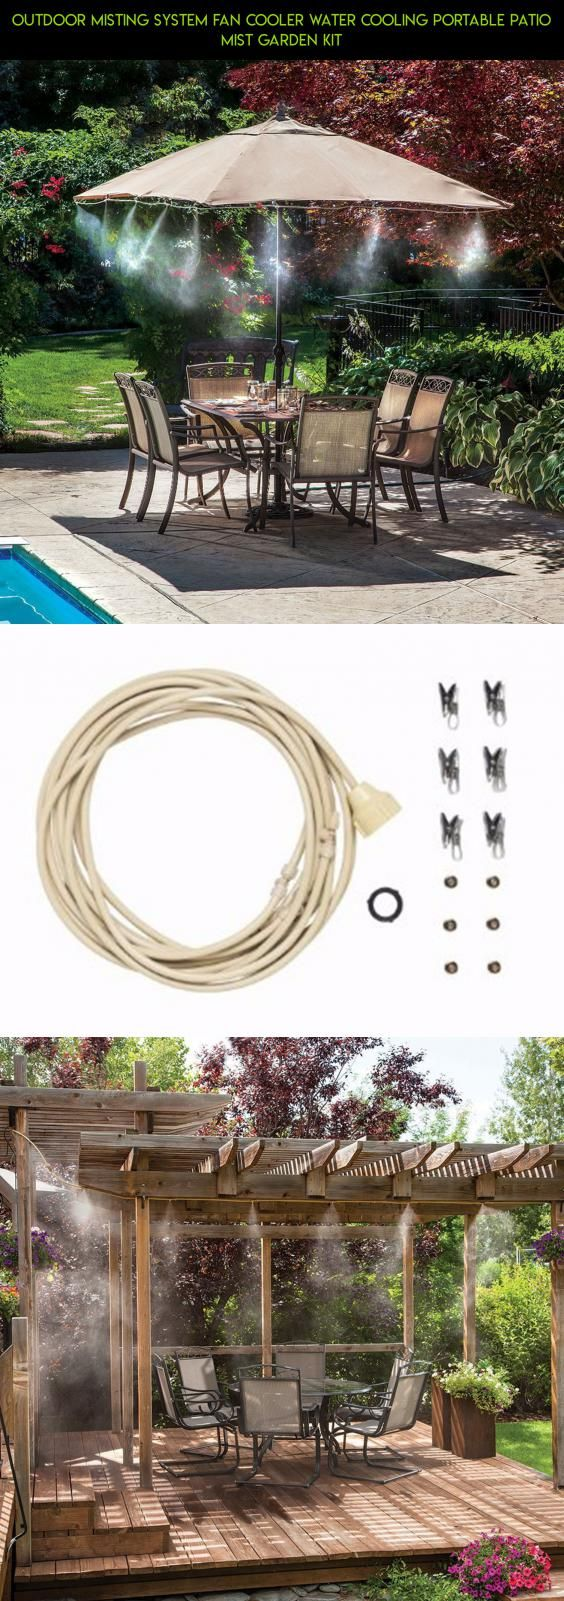 outdoor misting system fan cooler water cooling portable patio